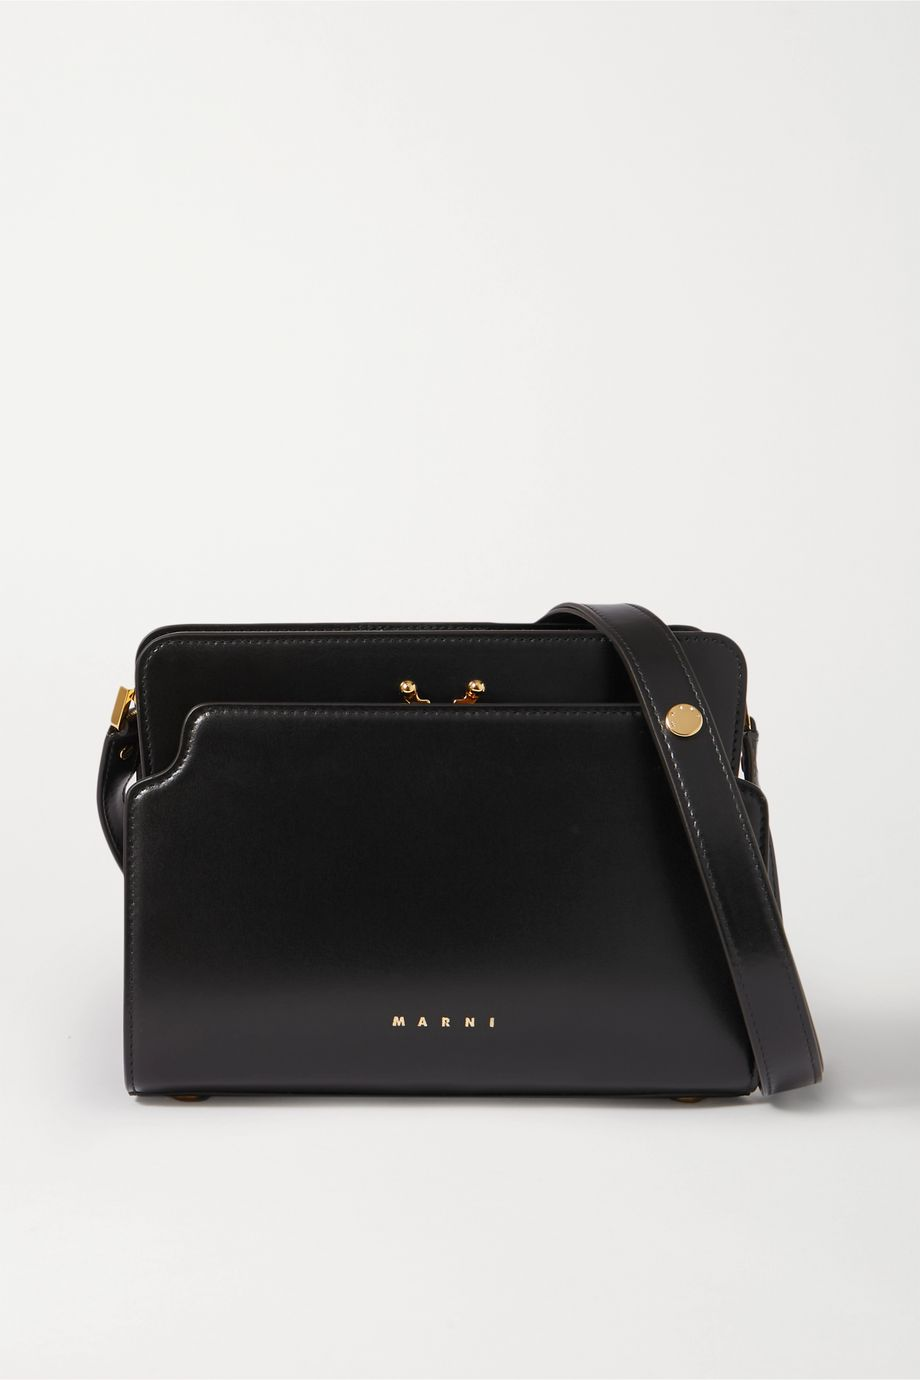 Marni Trunk Reverse small leather shoulder bag